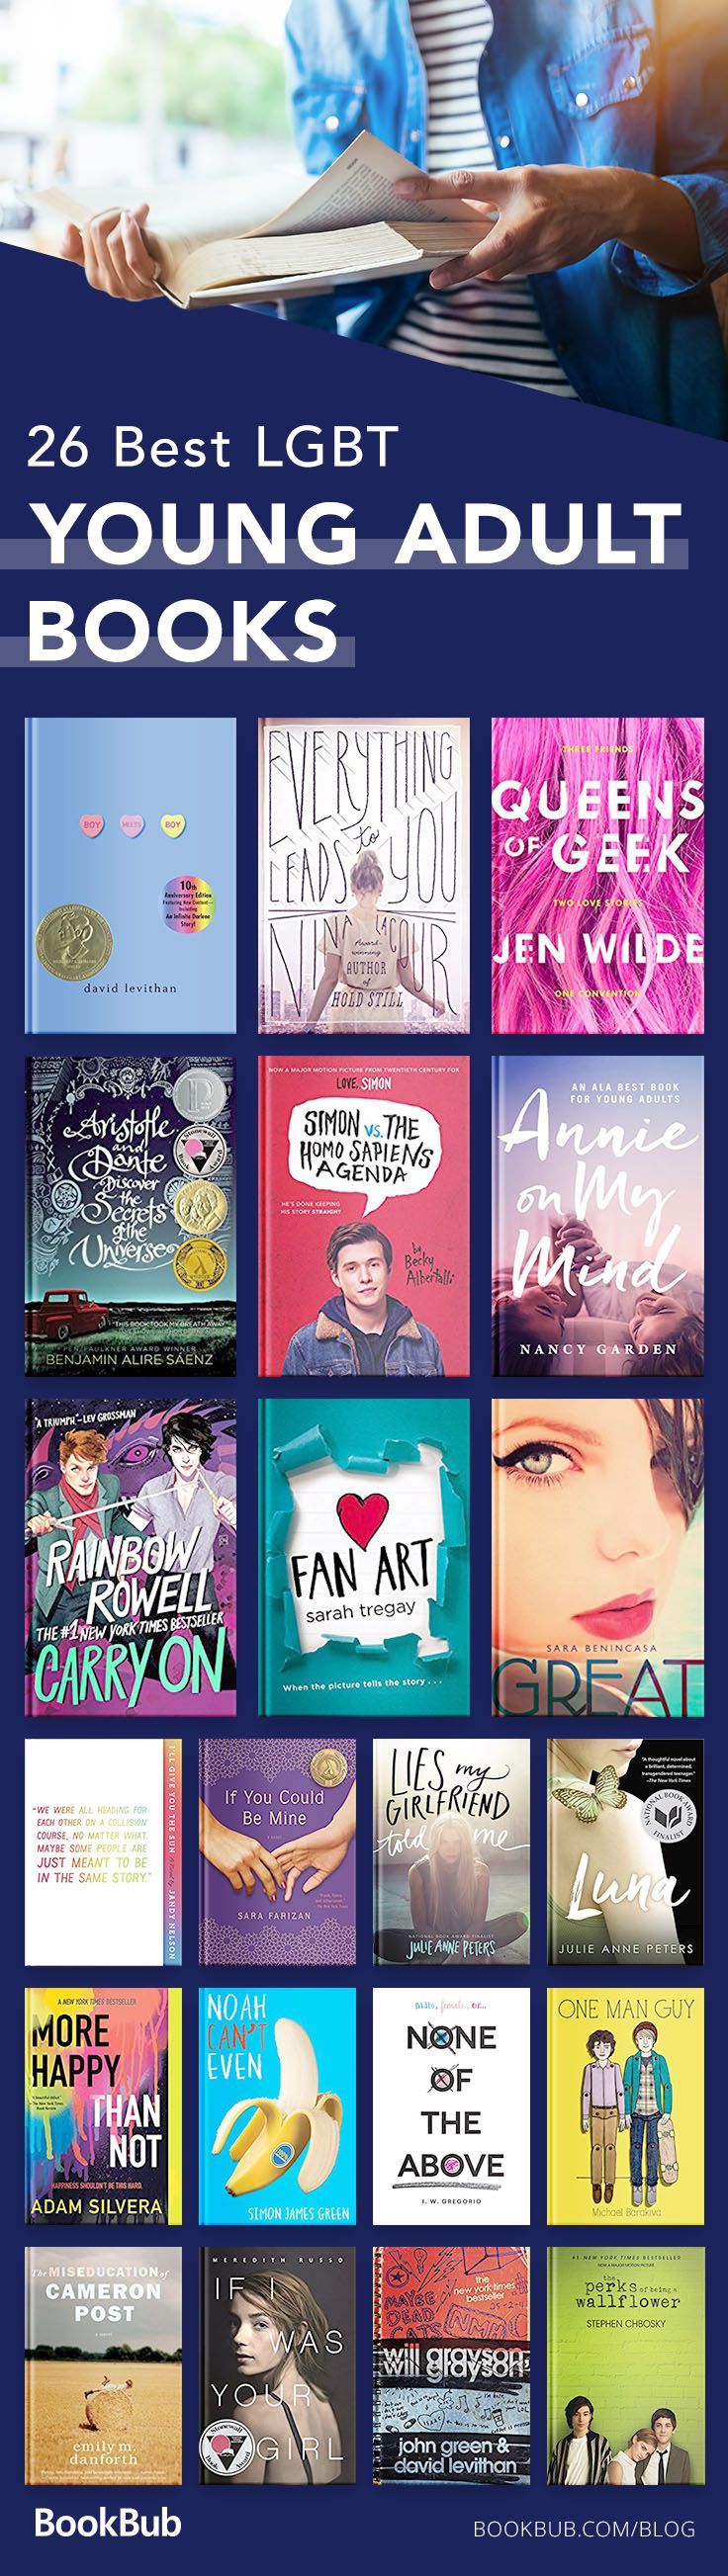 27 Excellent LGBT YA Books to Add to Your Reading List #dolistsorbooks